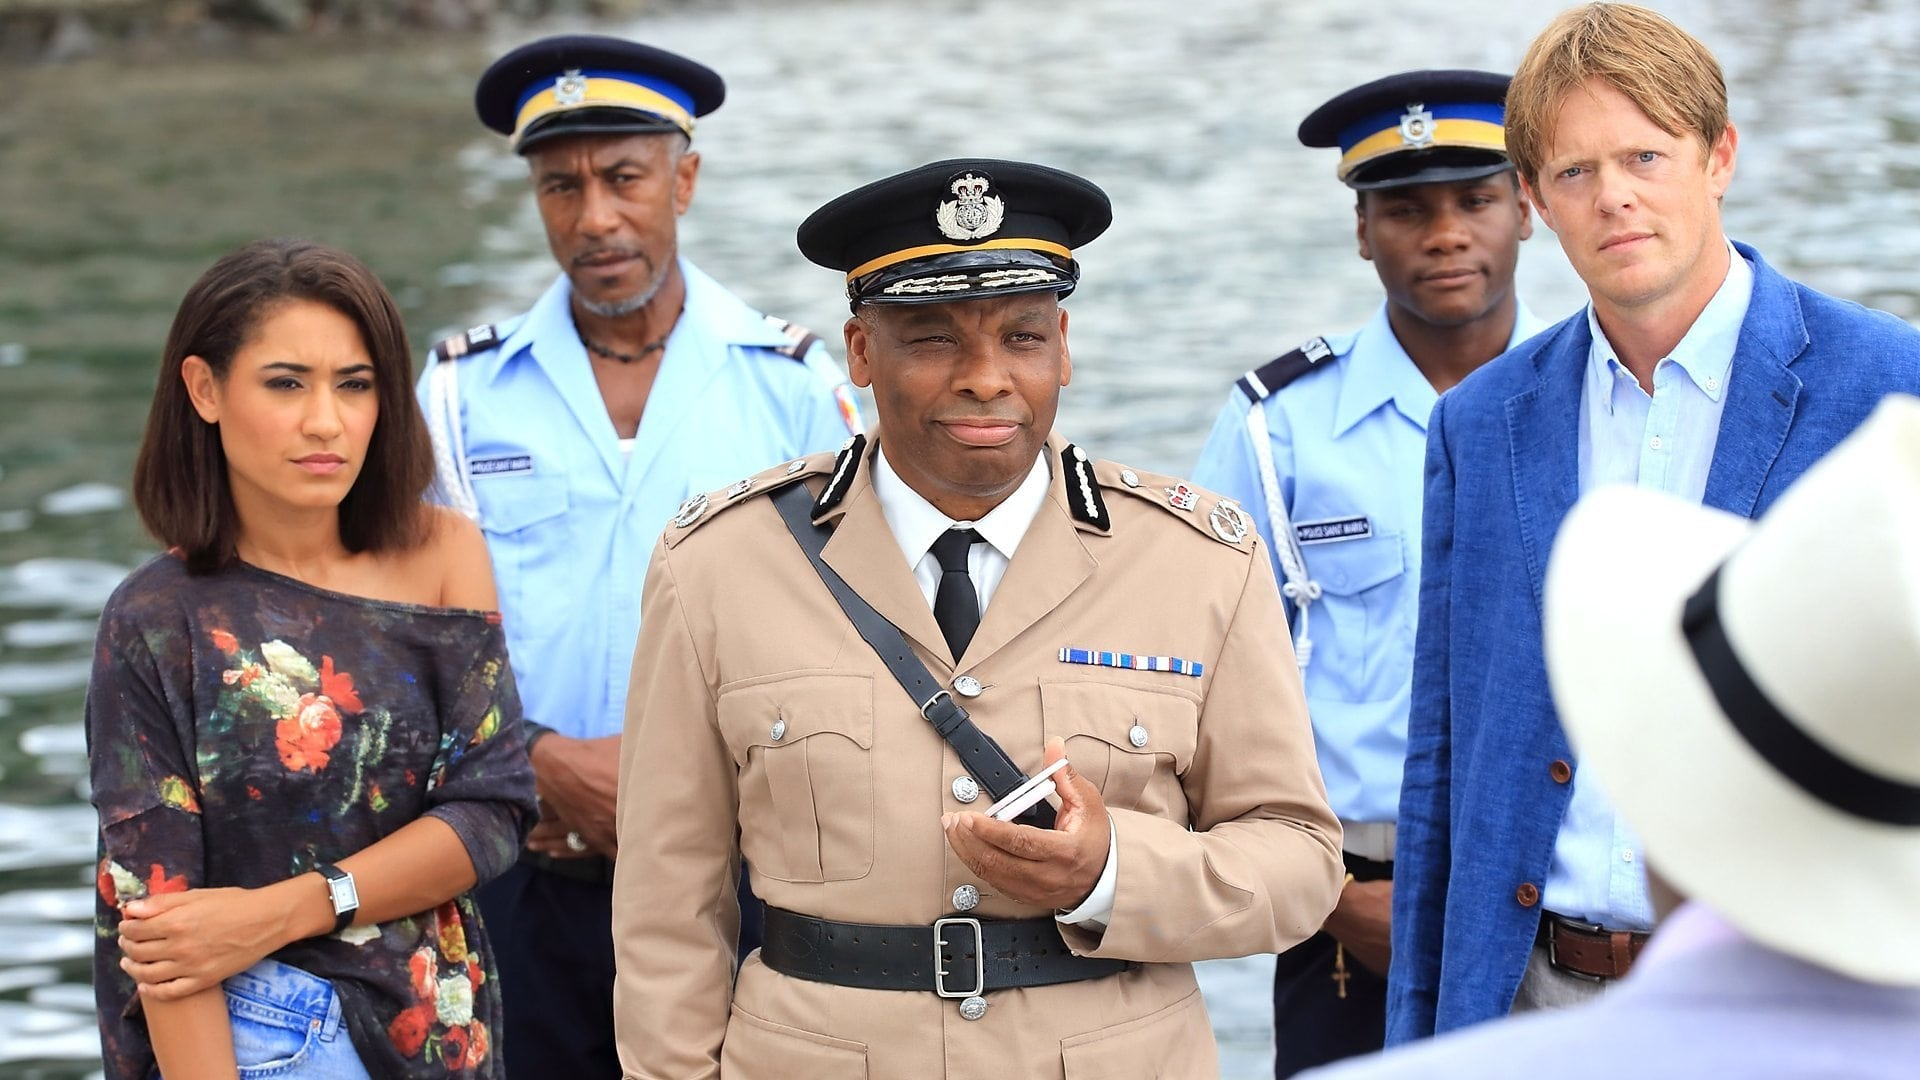 Death in Paradise - Season 4 Episode 6 : The Perfect Murder